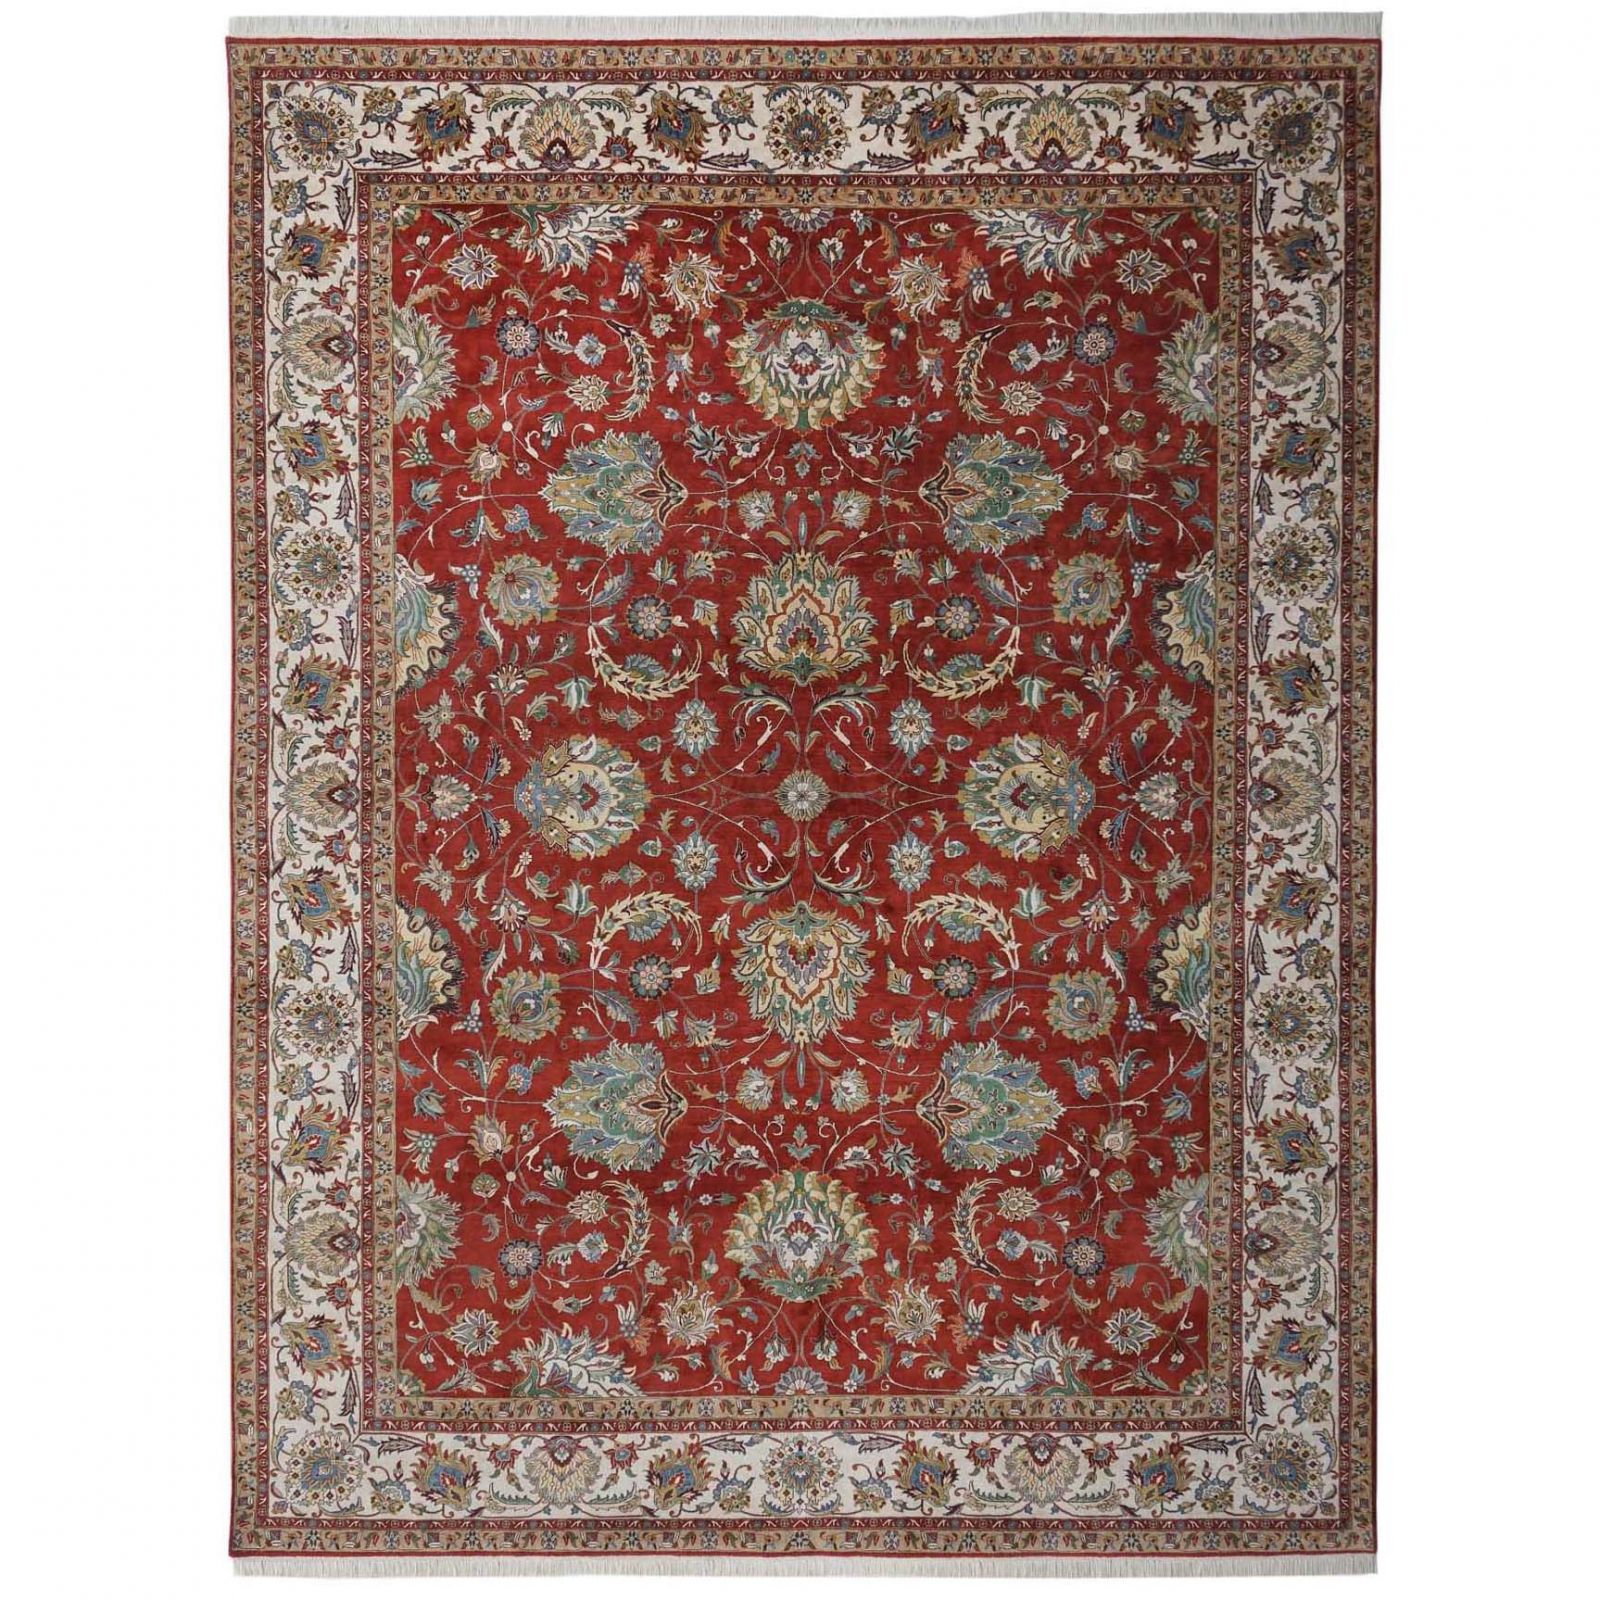 A Fine Tabriz design silk pile carpet